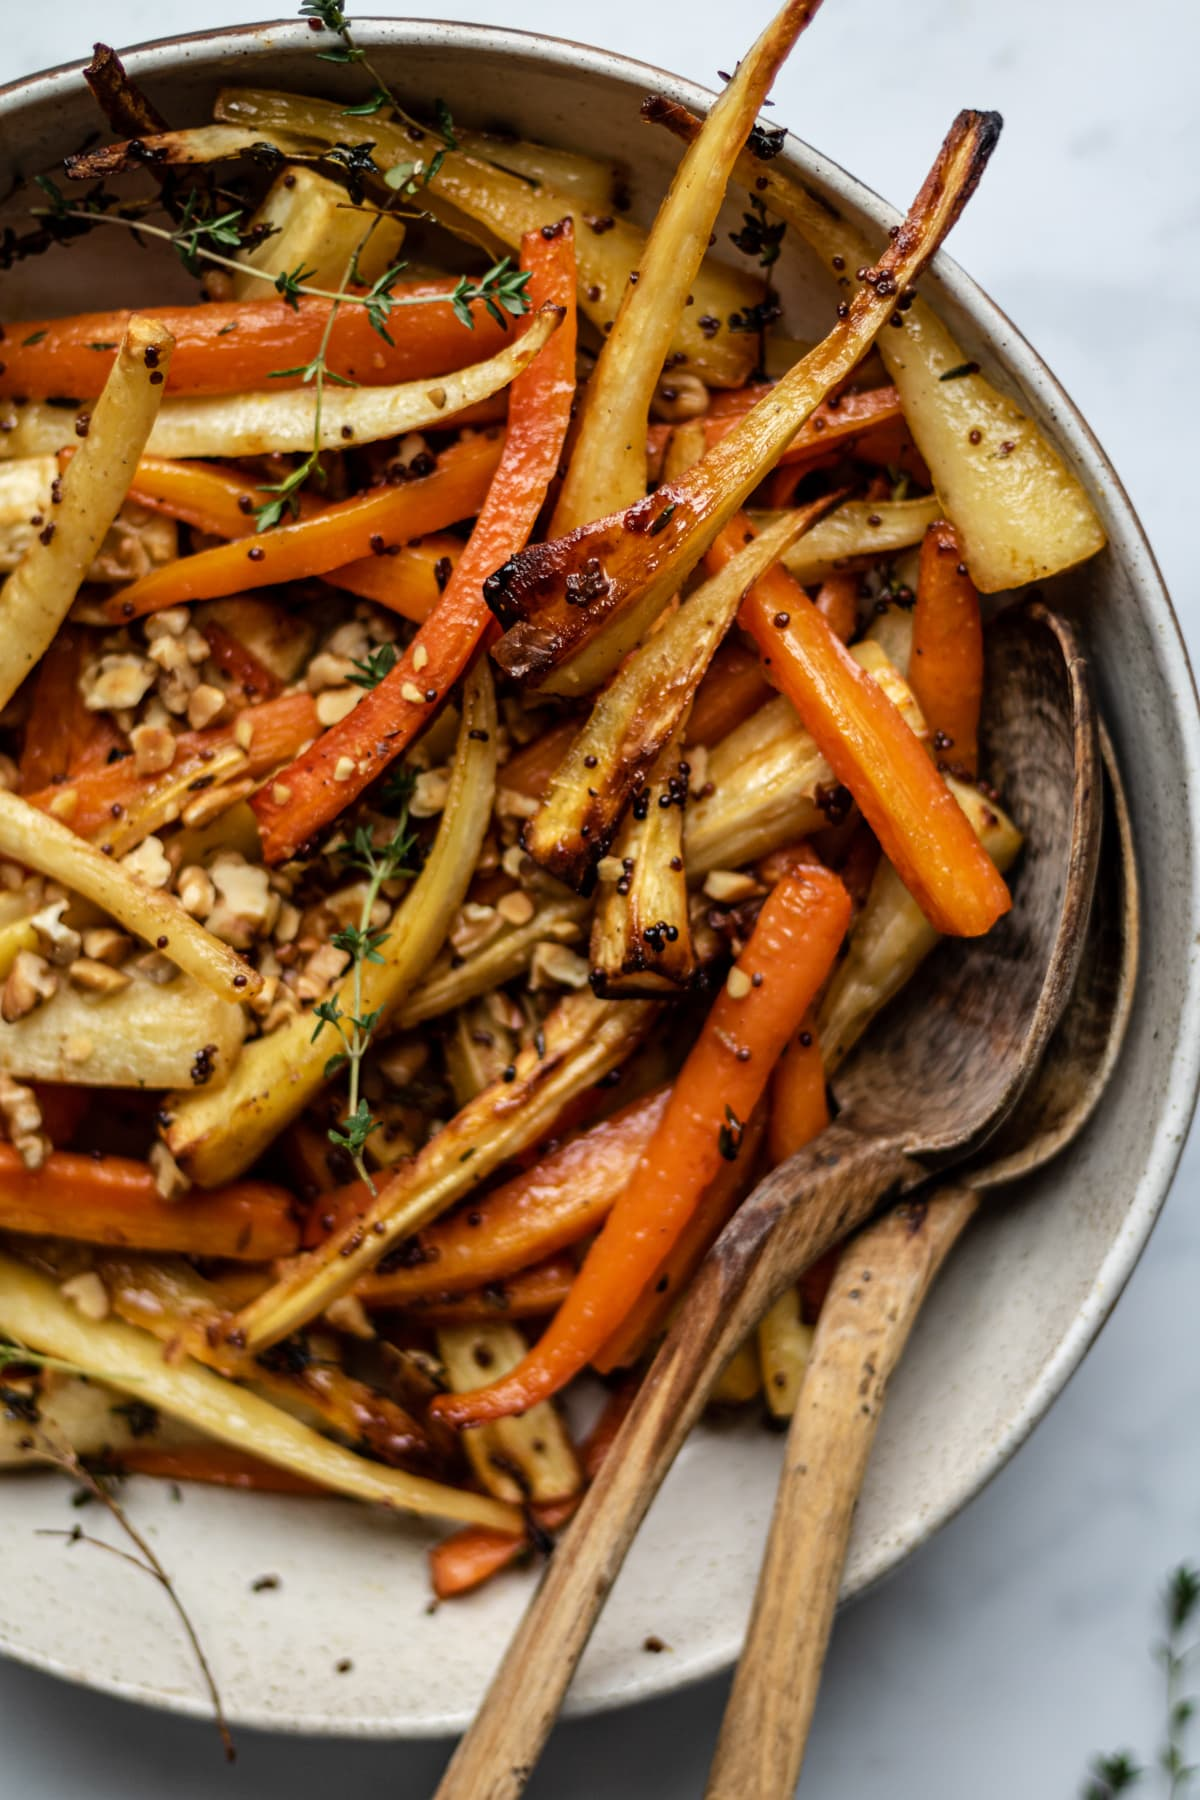 Close up image of roasted carrots and parsnips in a serving dish with serving spoons